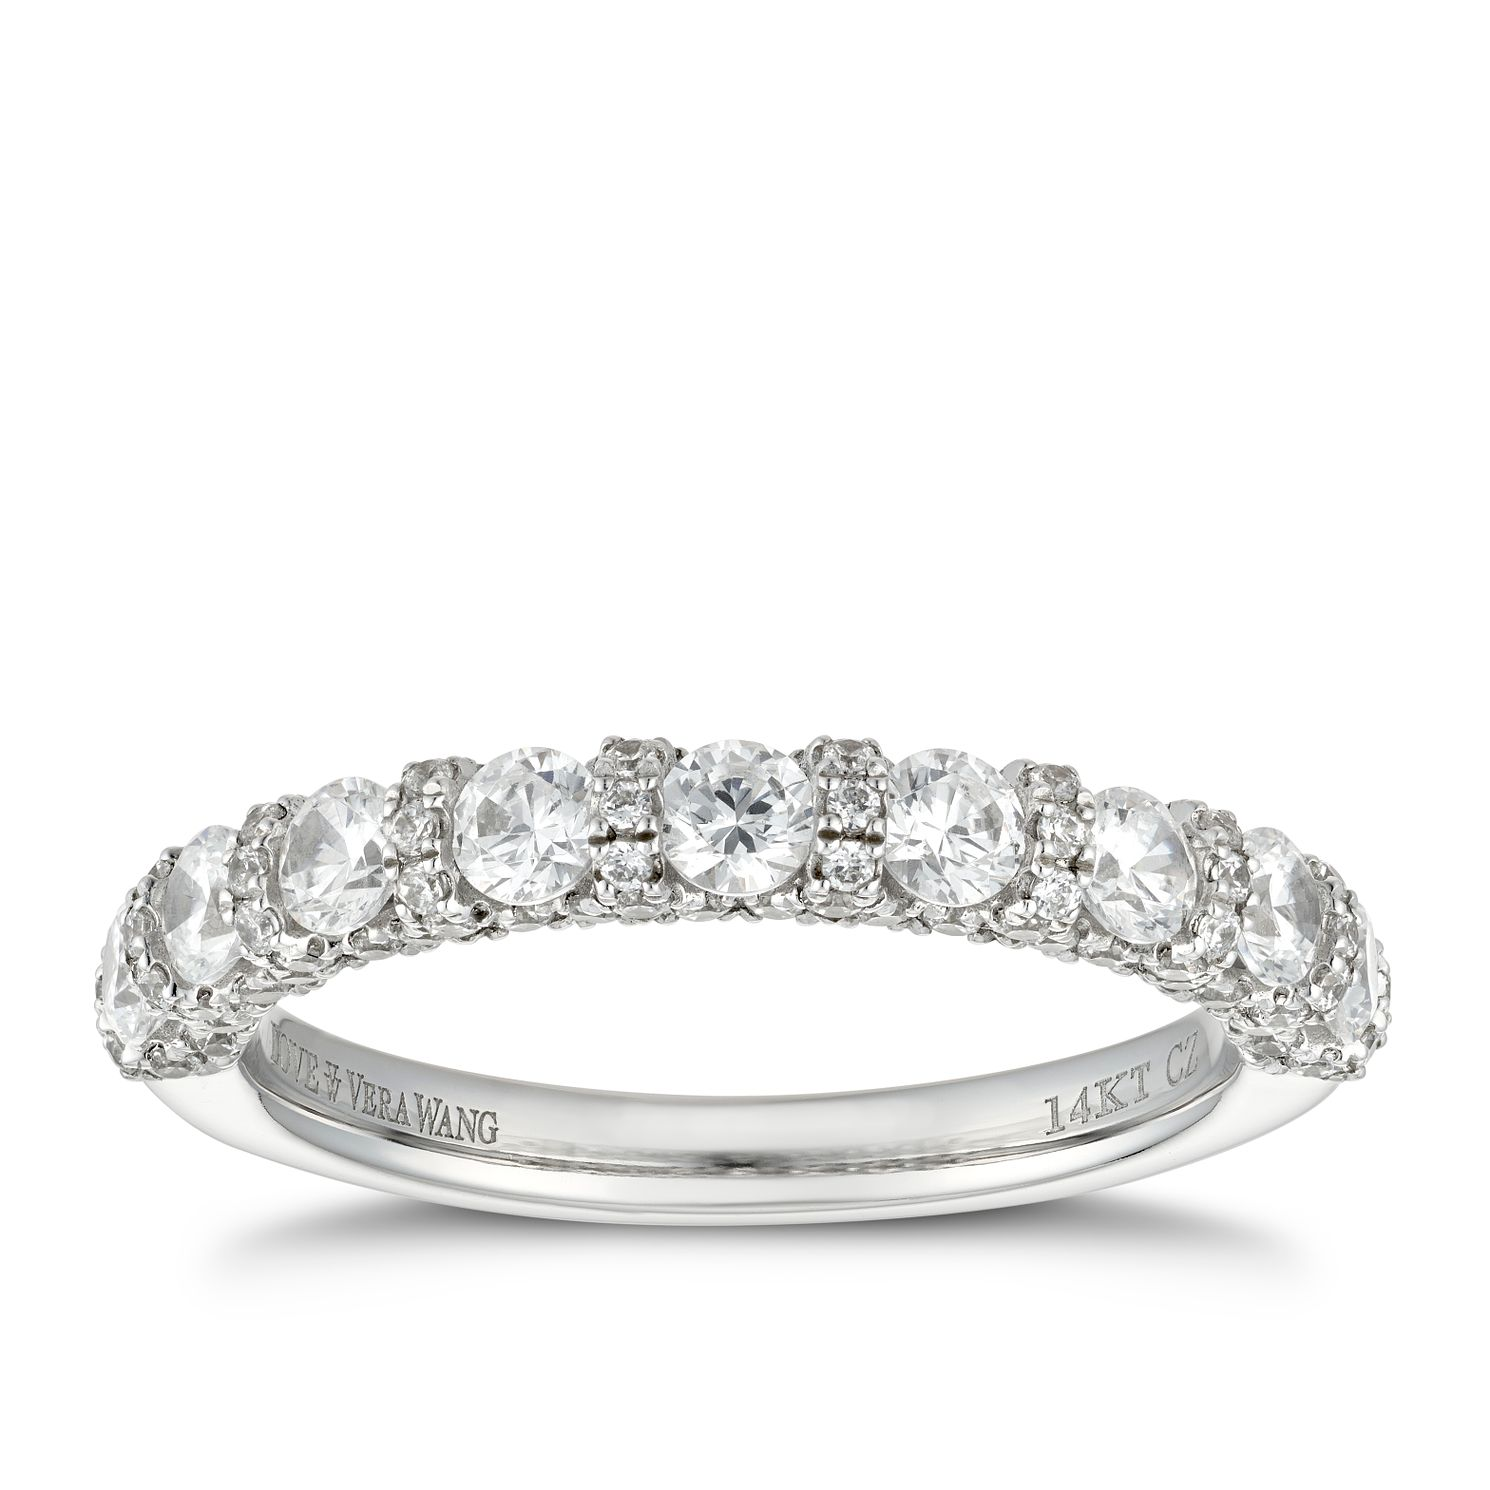 Vera Wang 18ct White Gold 1.23ct Diamond Eternity Ring - Product number 5928958